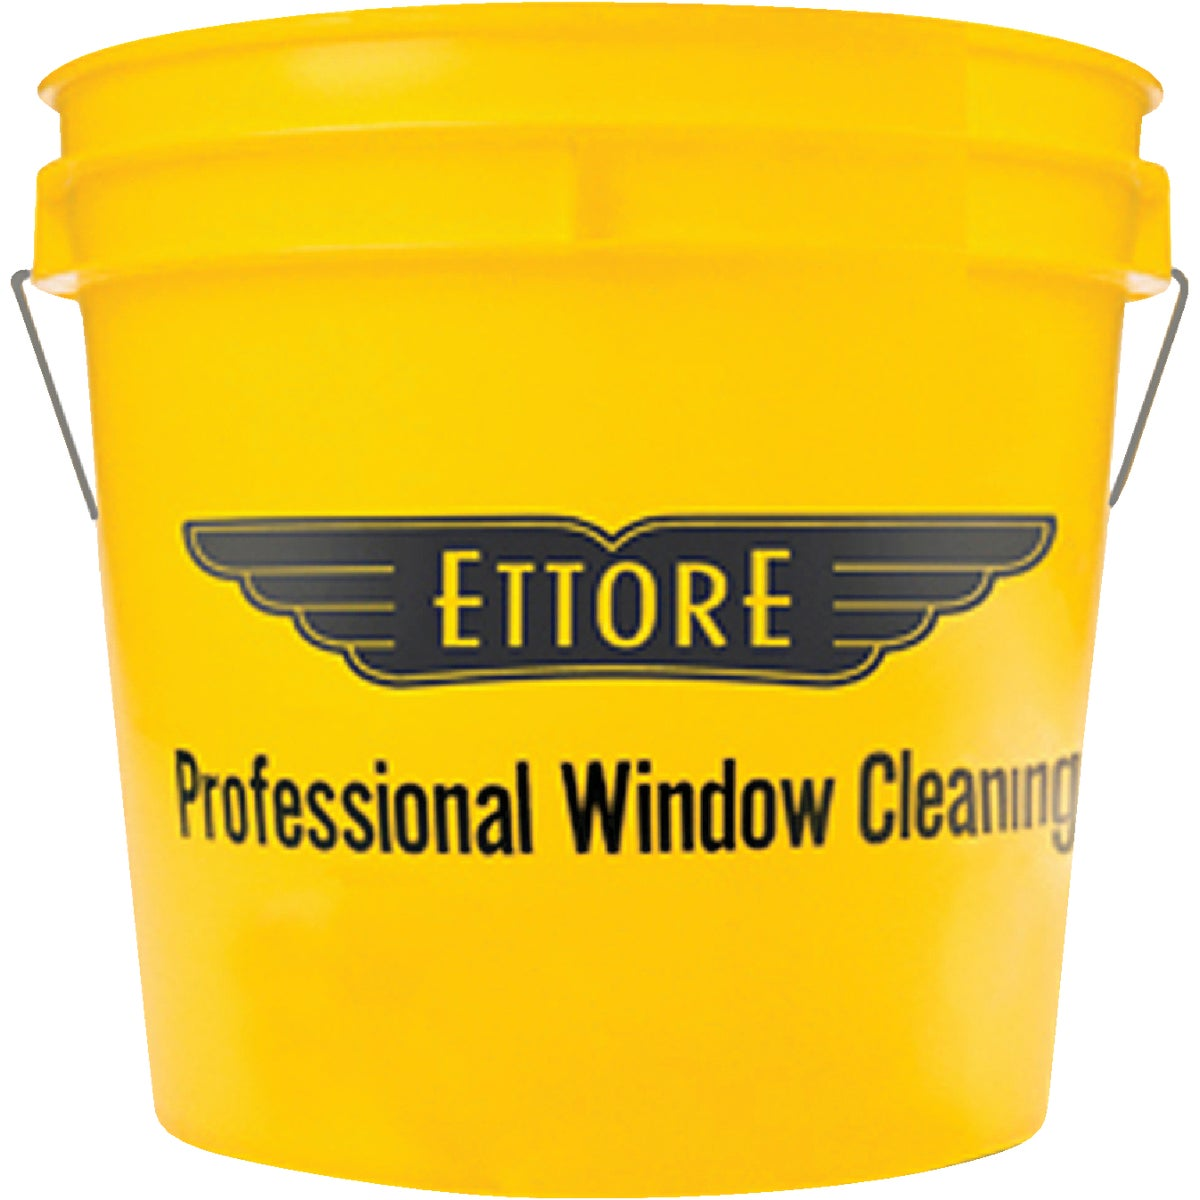 3-1/2GAL BUCKET - 82222 by Ettore Products Co